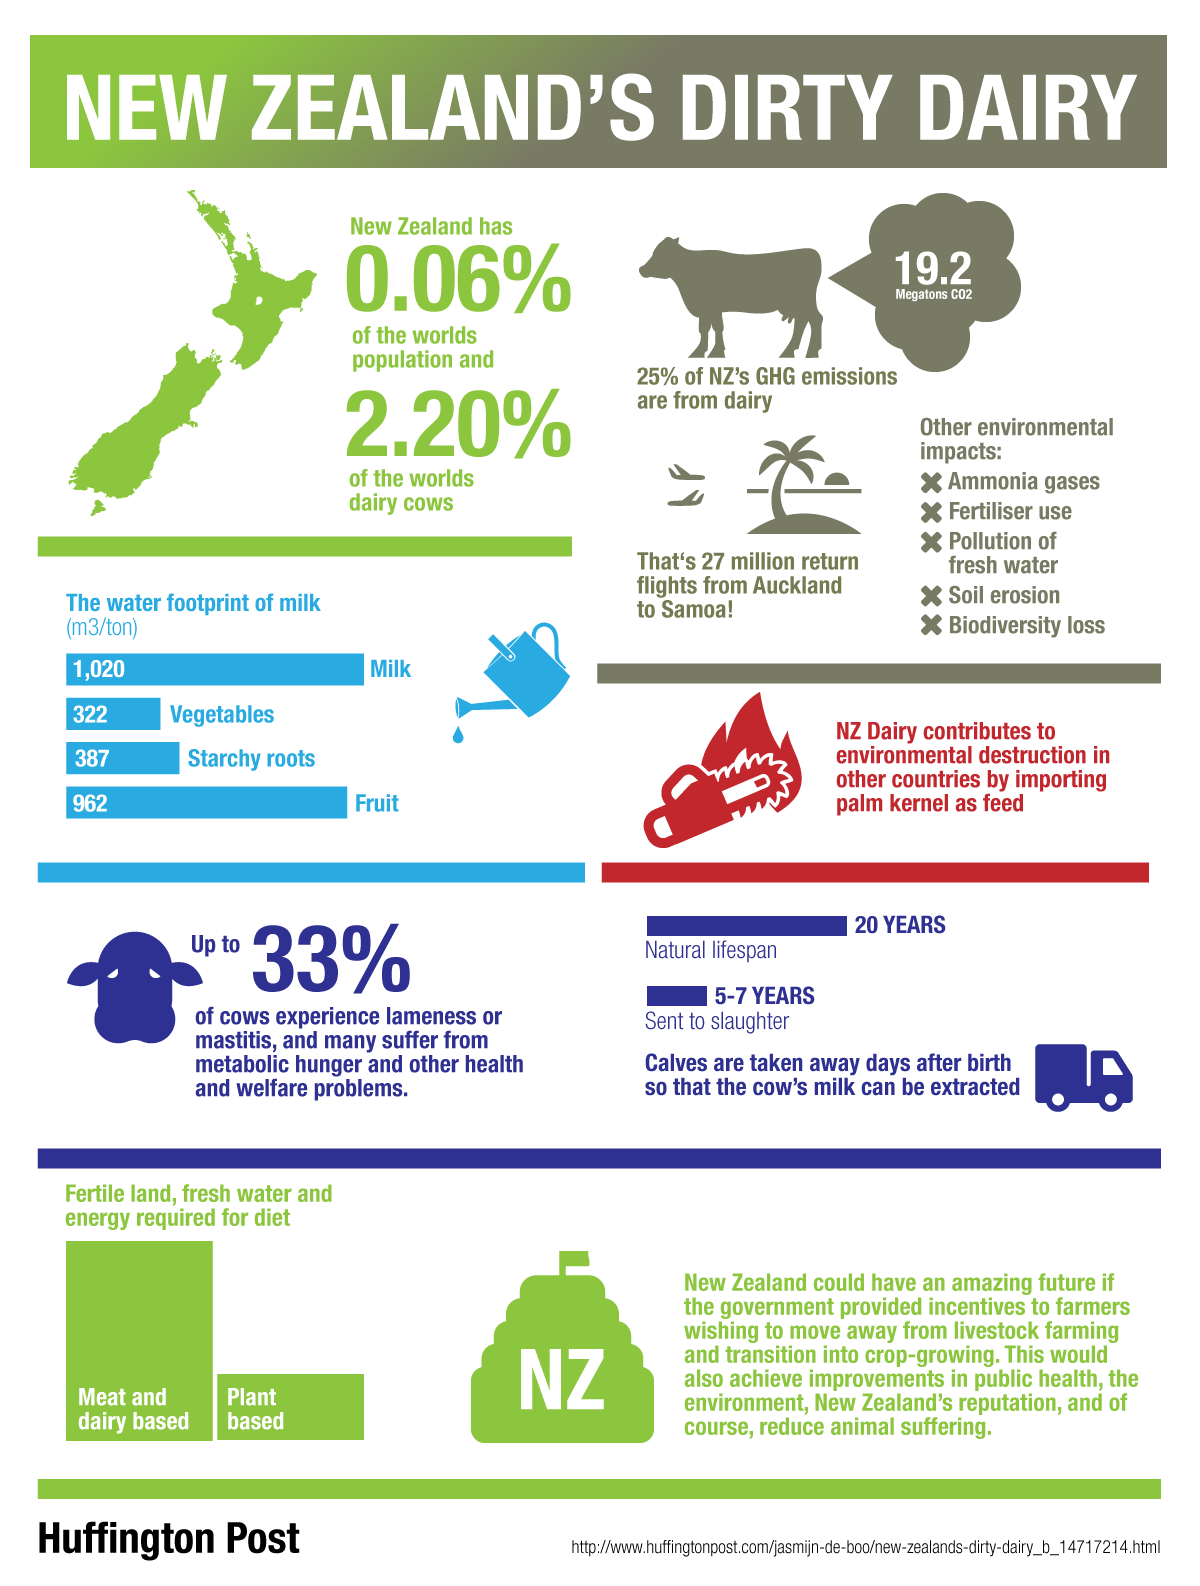 New Zealand's Dirty Dairy